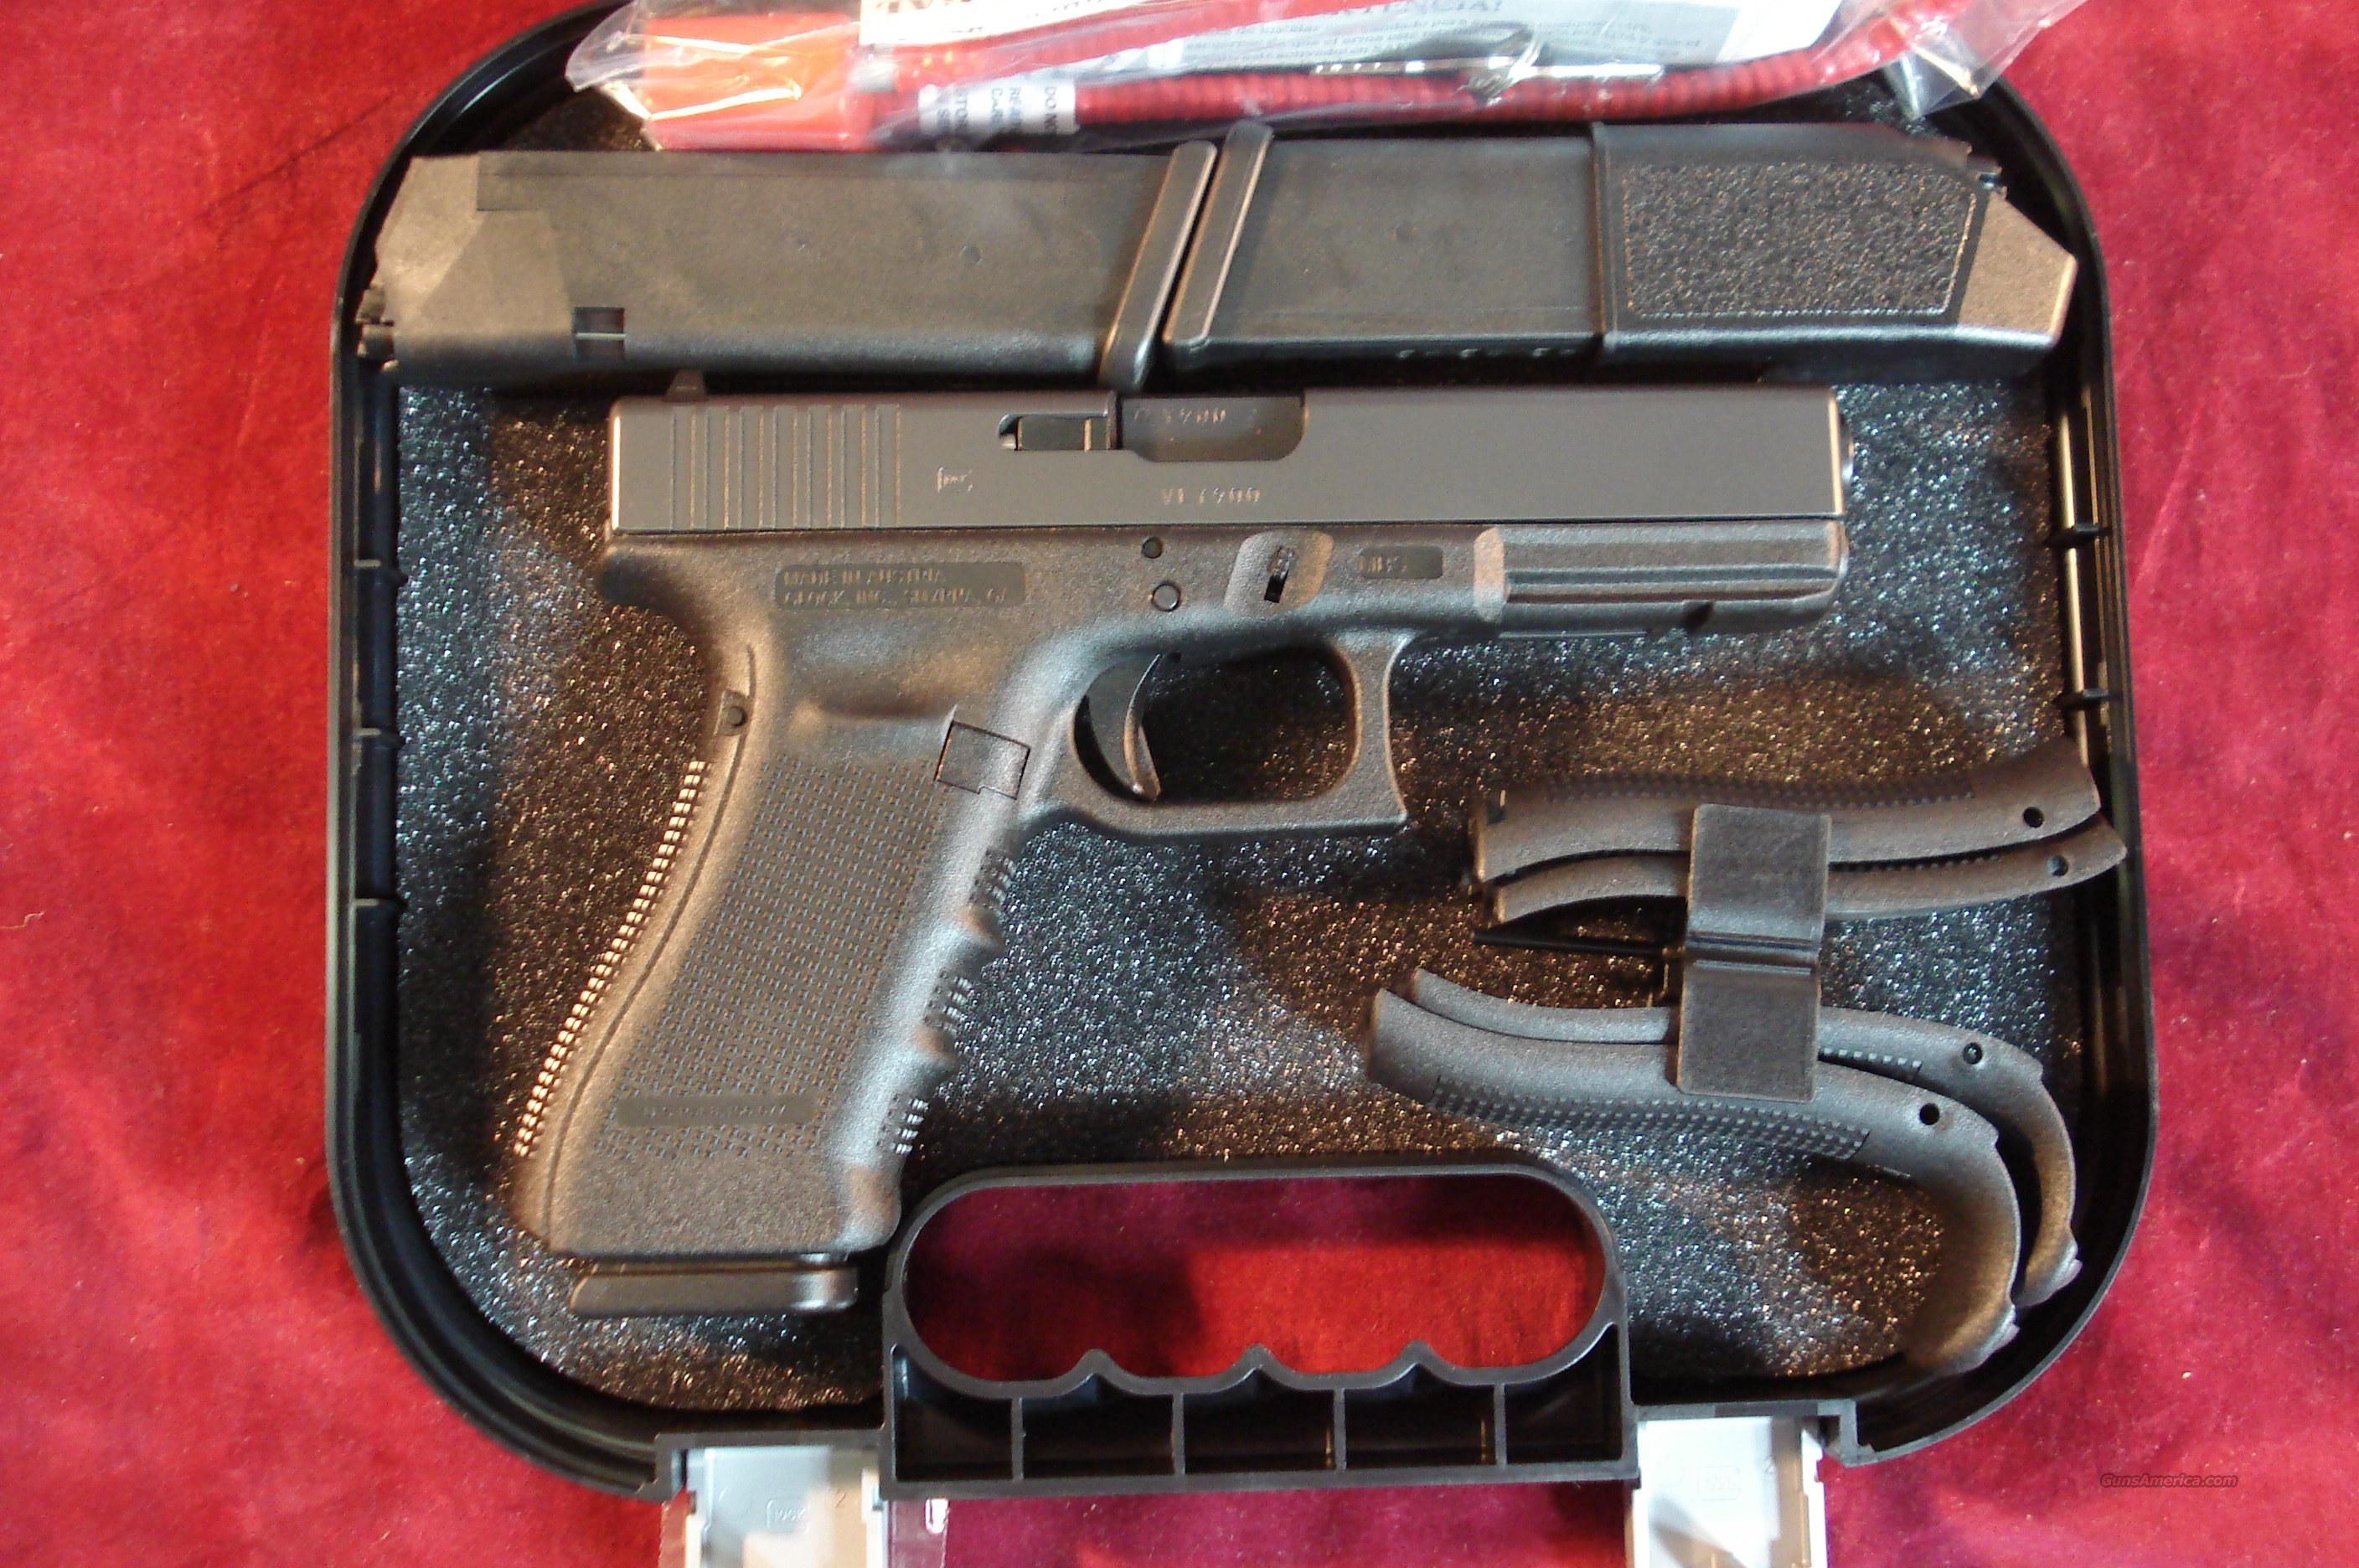 GLOCK 22 40CAL GEN 4  W/ 3 HIGH CAPACITY MAGS 4 BACKSTRAPS NEW  Guns > Pistols > Glock Pistols > 22